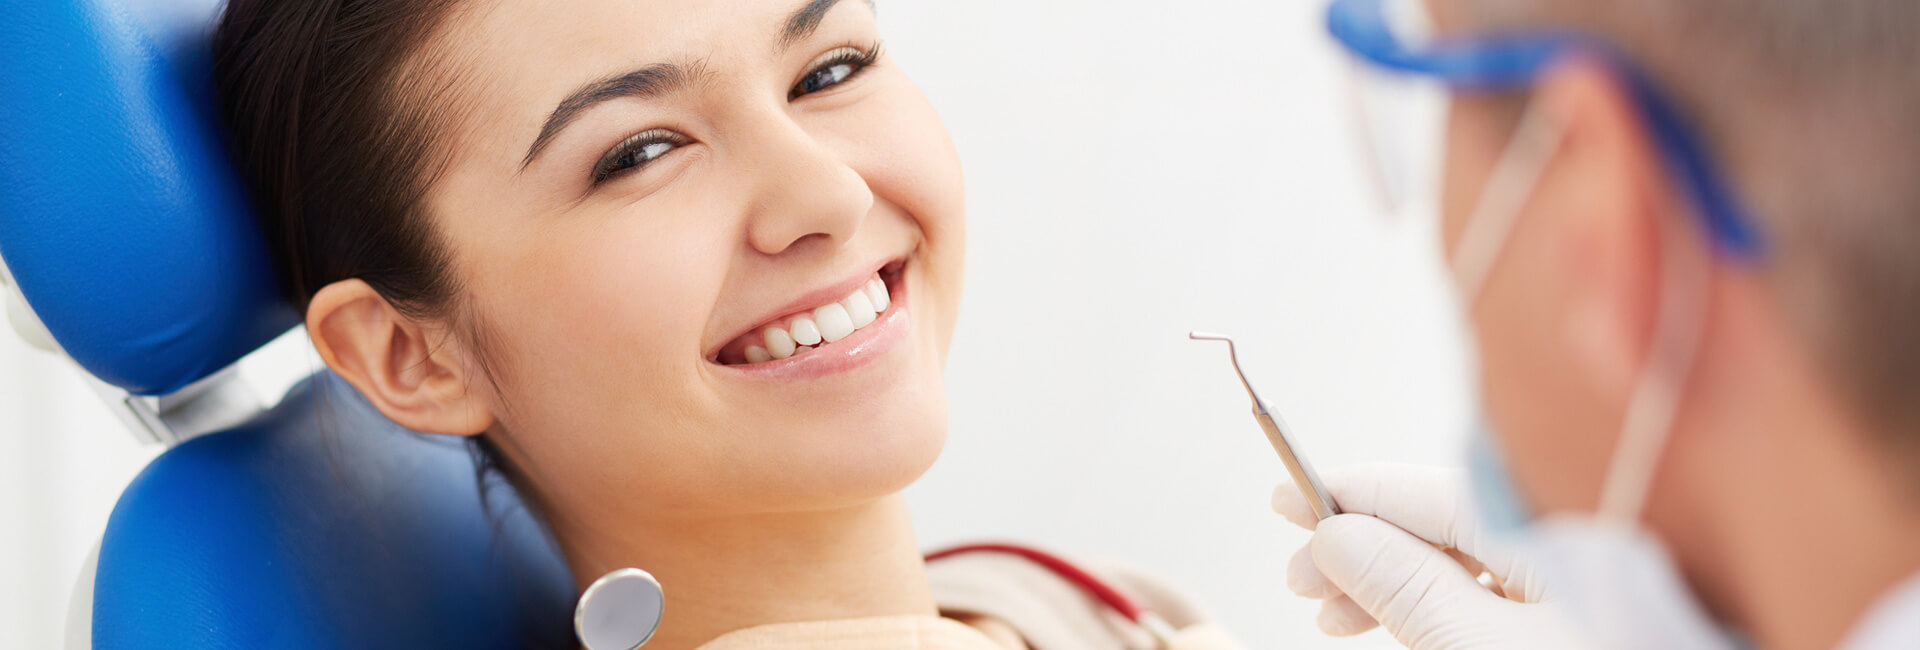 Happy patient smiling seated at dental chair while dentist is holding a dental prosthetic